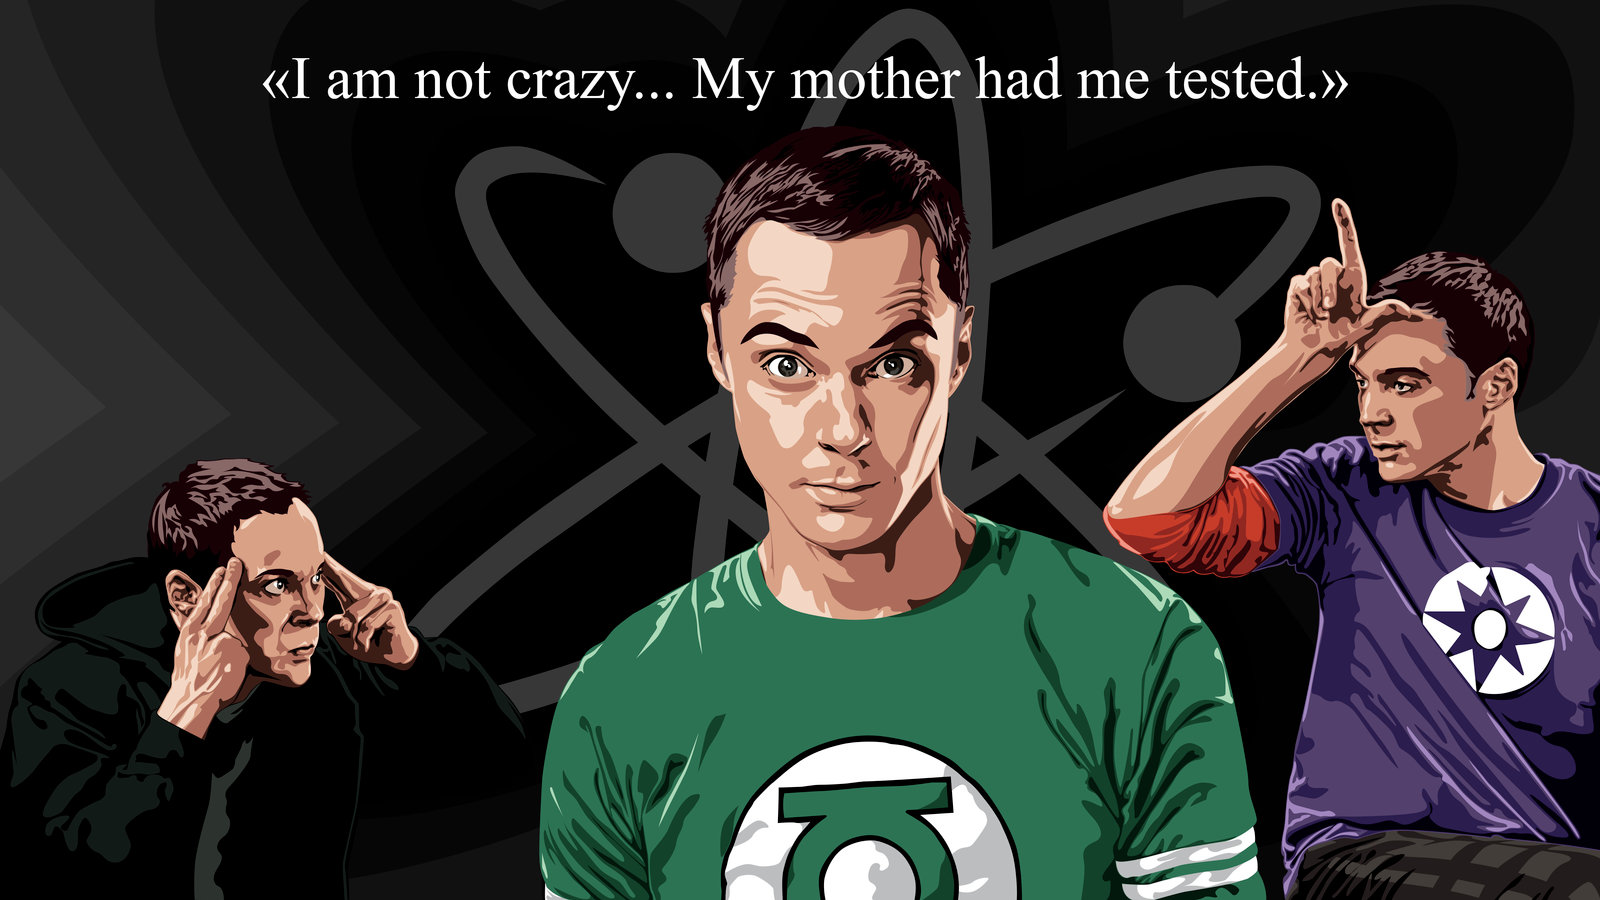 big_bang_theory_sheldon_cooper_quote_i_m_not_crazy_by_mohokta81-d84zmwn